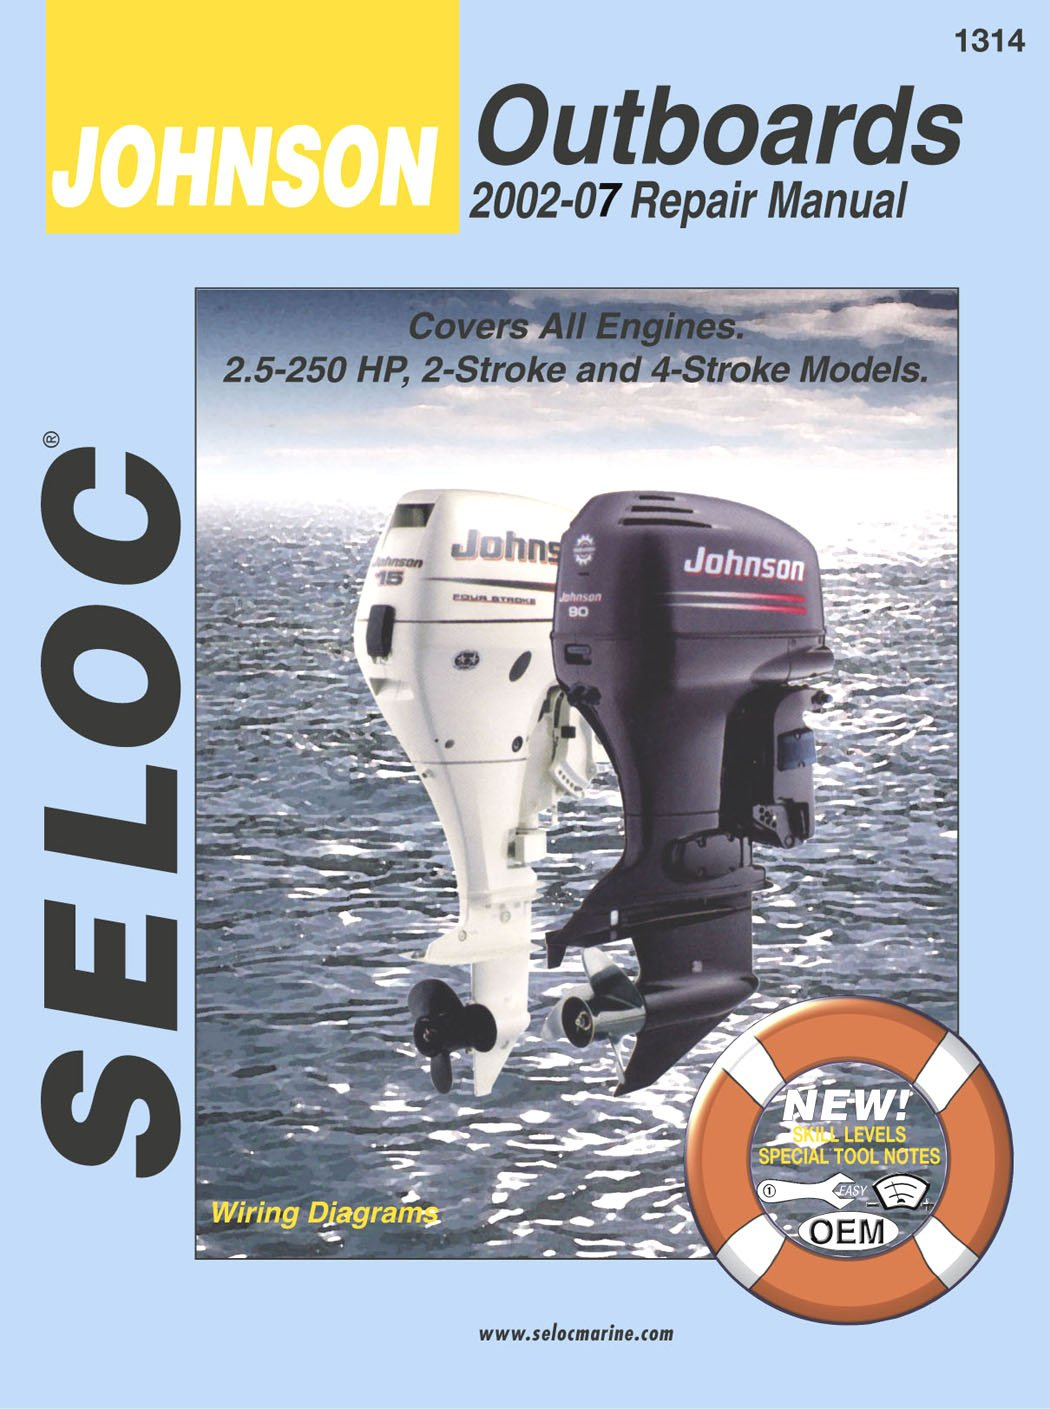 Amazon.com : Sierra International Seloc Manual 18-01314 Johnson Outboards  Repair 2002-2007 2.5-250 HP 2 Stroke & 4 Stroke Model : Sports & Outdoors